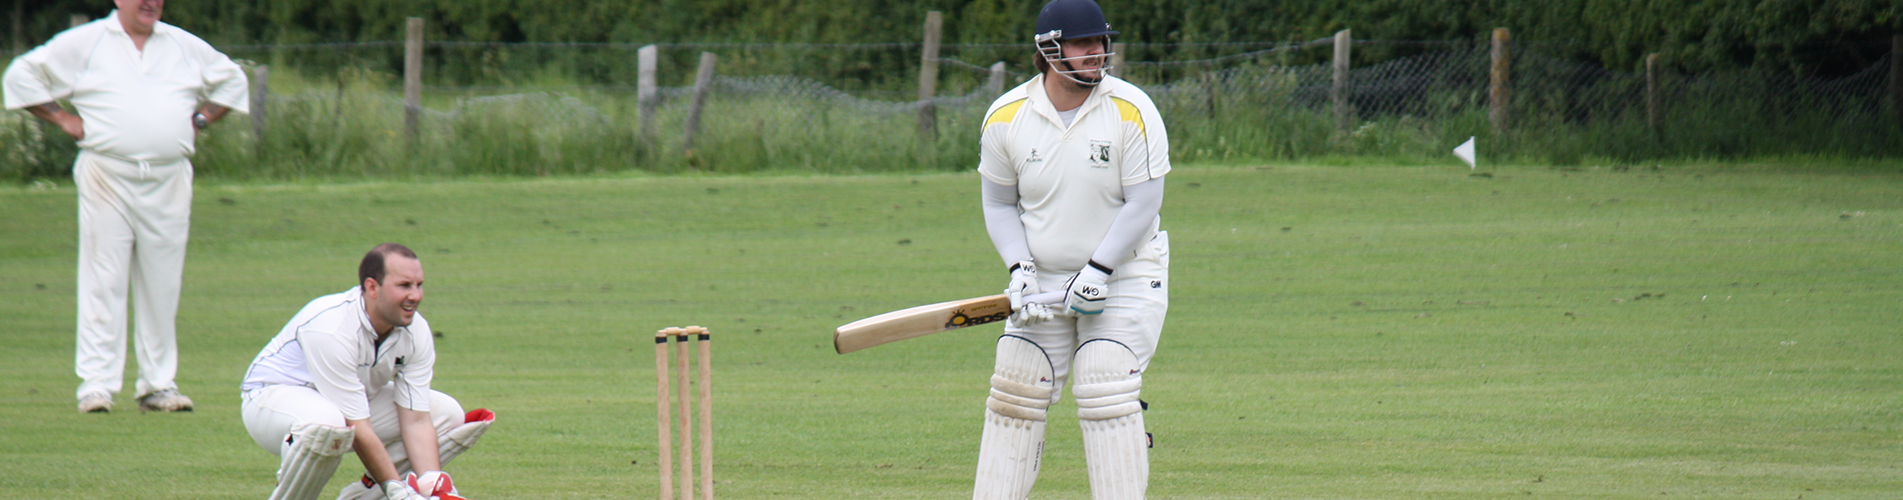 Saturday league batting